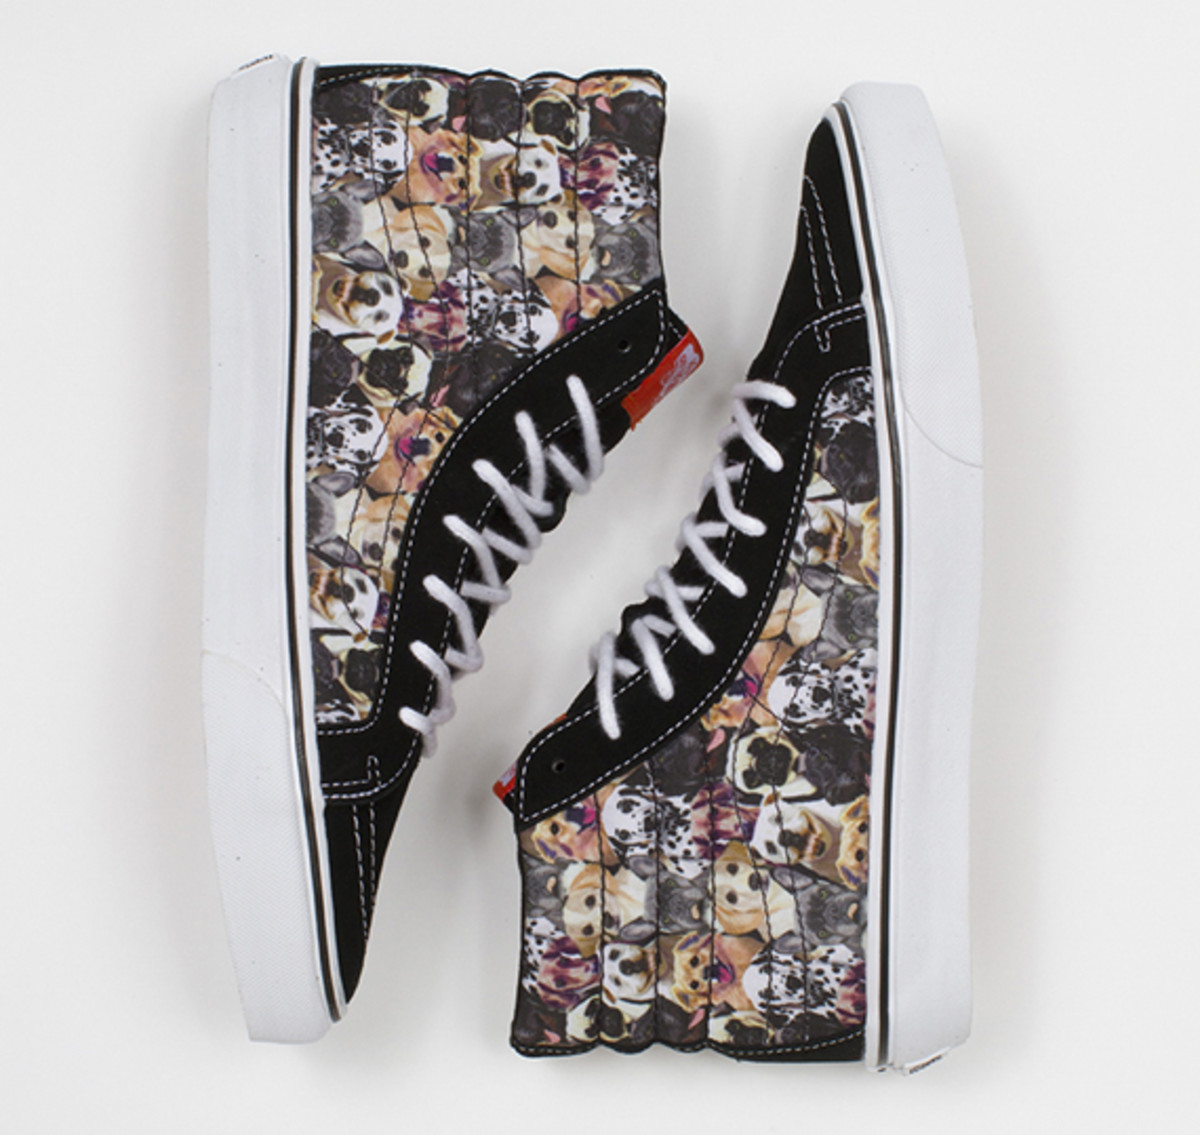 aspca-vans-collection-02